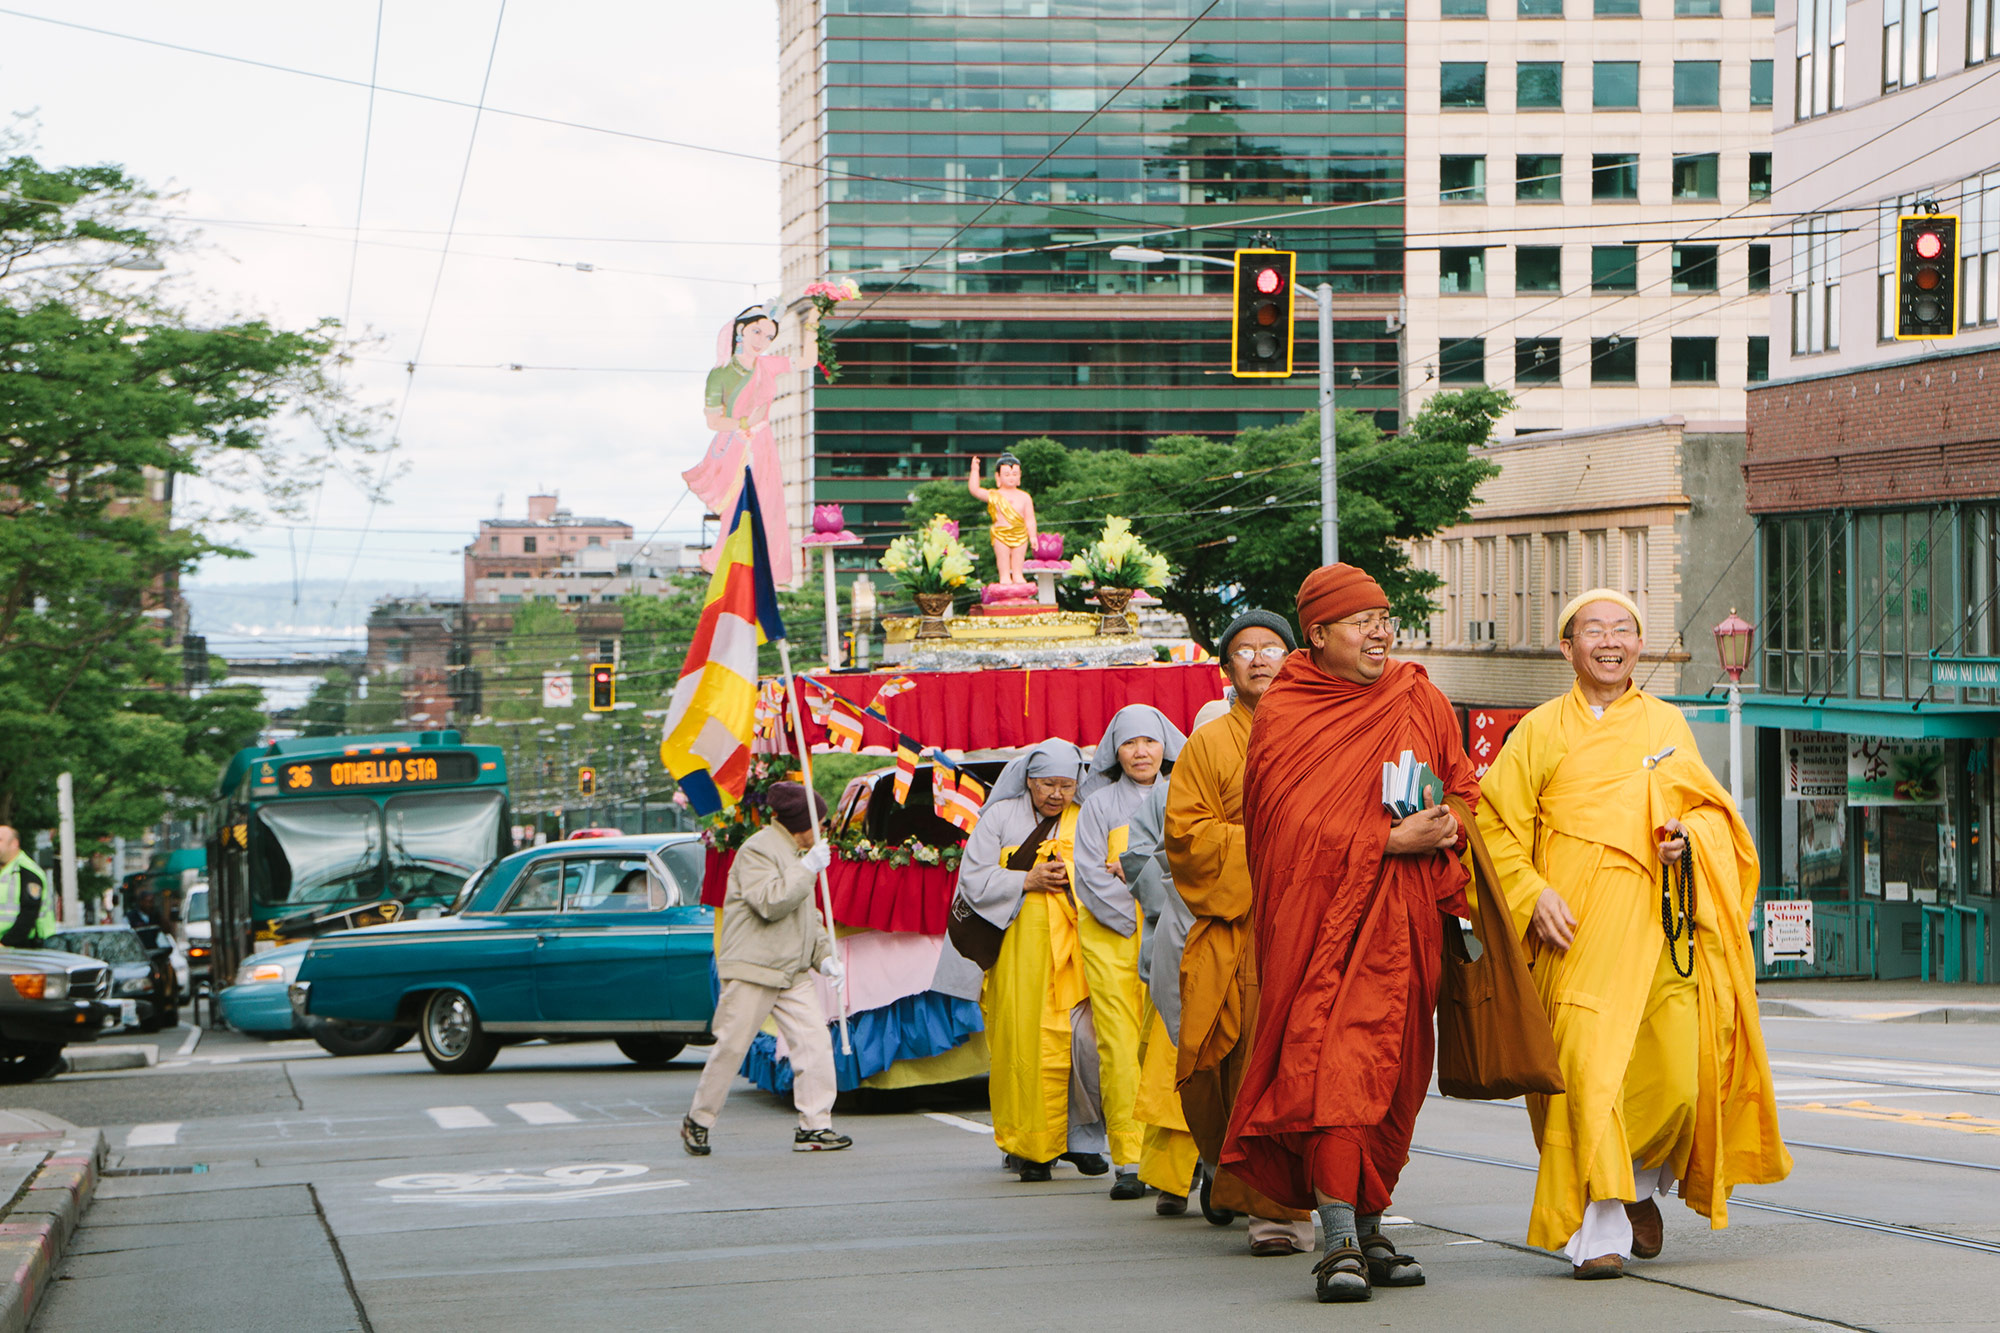 Monks walk down the street in front of a vehicle cked out in bright colors. In the background, a blue 62 impala falls into line behind them and a bus reads 36 Othello Sta.